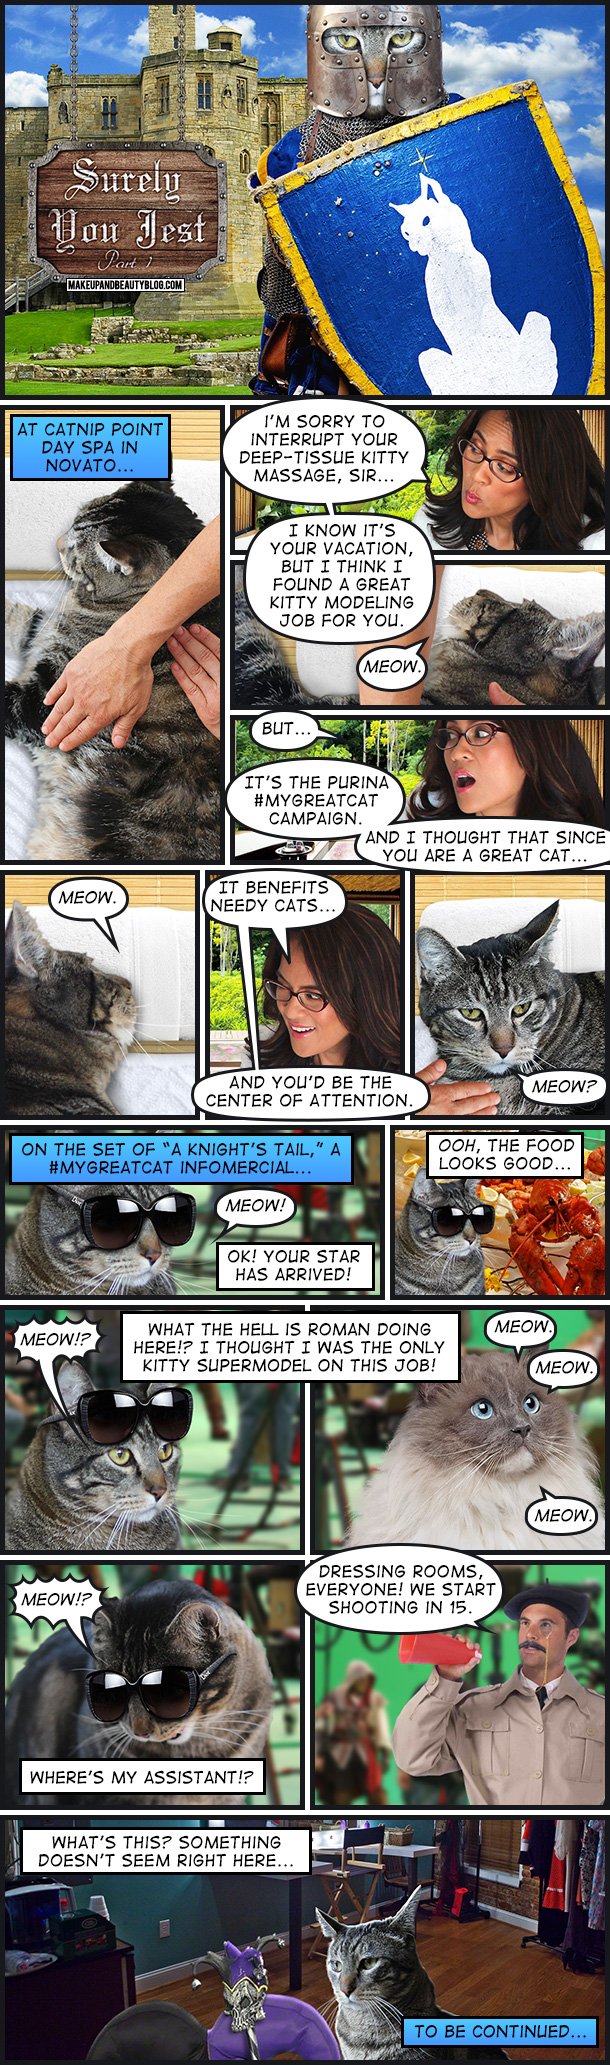 A Tabs the Cat Comic, Surely You Jest, Part 1